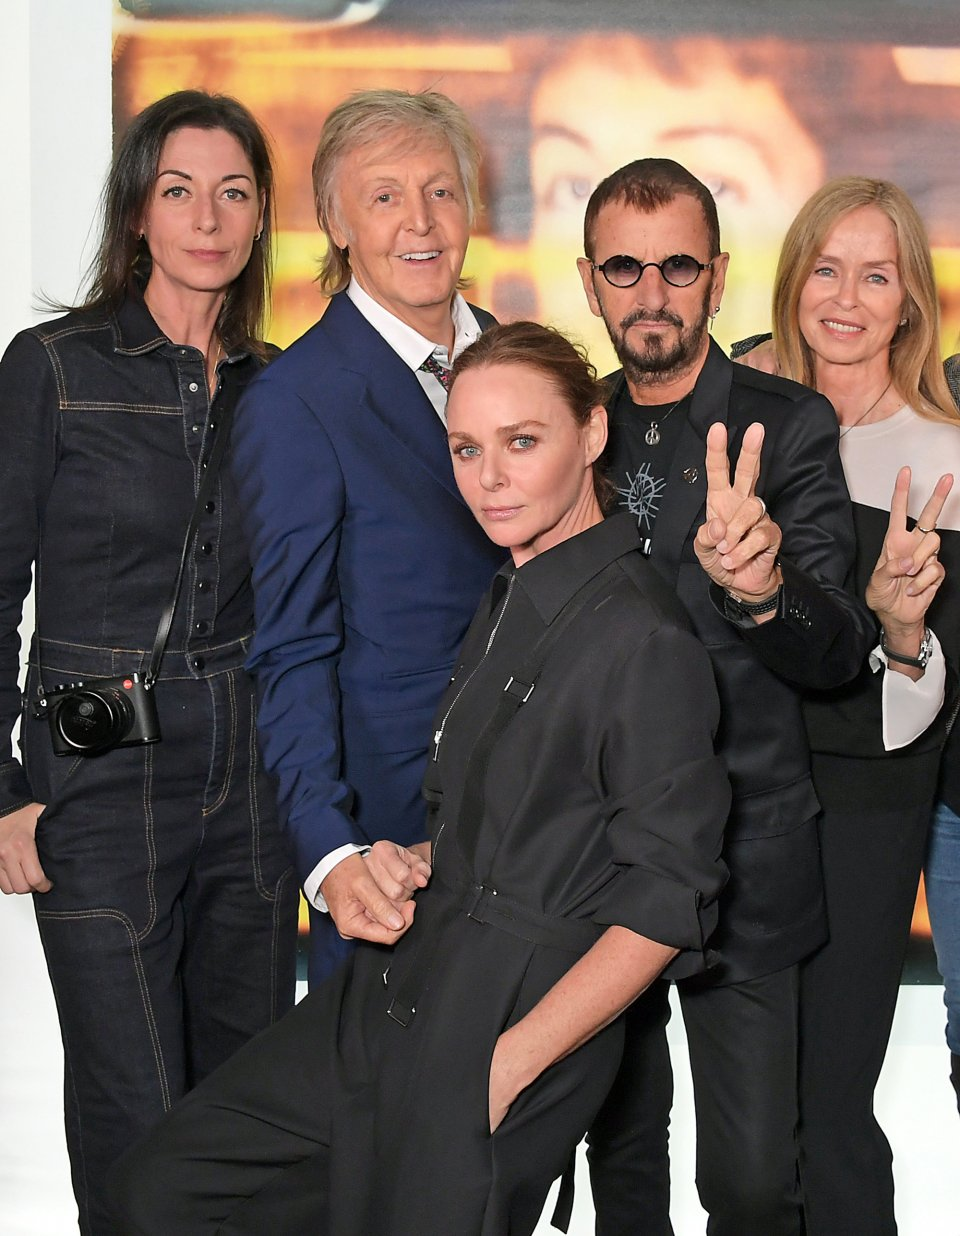 Paul McCartney celebrates, with a little help from his friends and family, at the London launch of Linda McCartney's instant classic The Polaroid Diaries